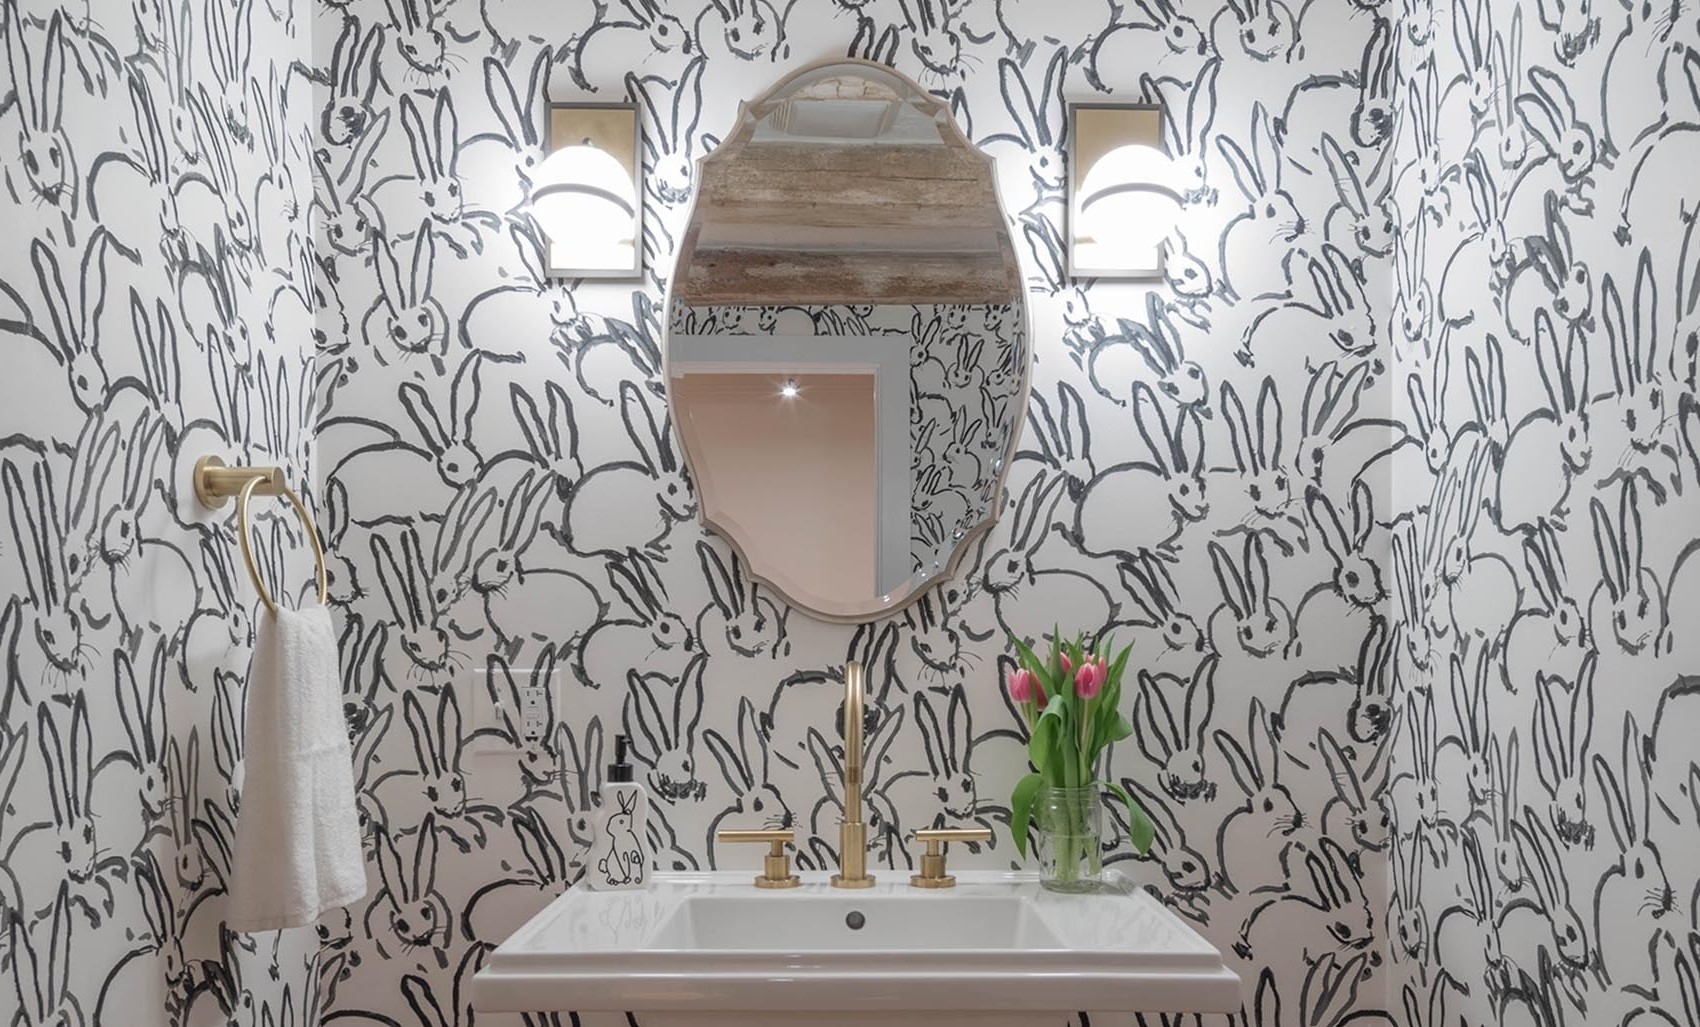 Before & After: The Cutest Bunny Wallpaper We'Ve Ever Seen Downstairs Bathroom Wallpaper